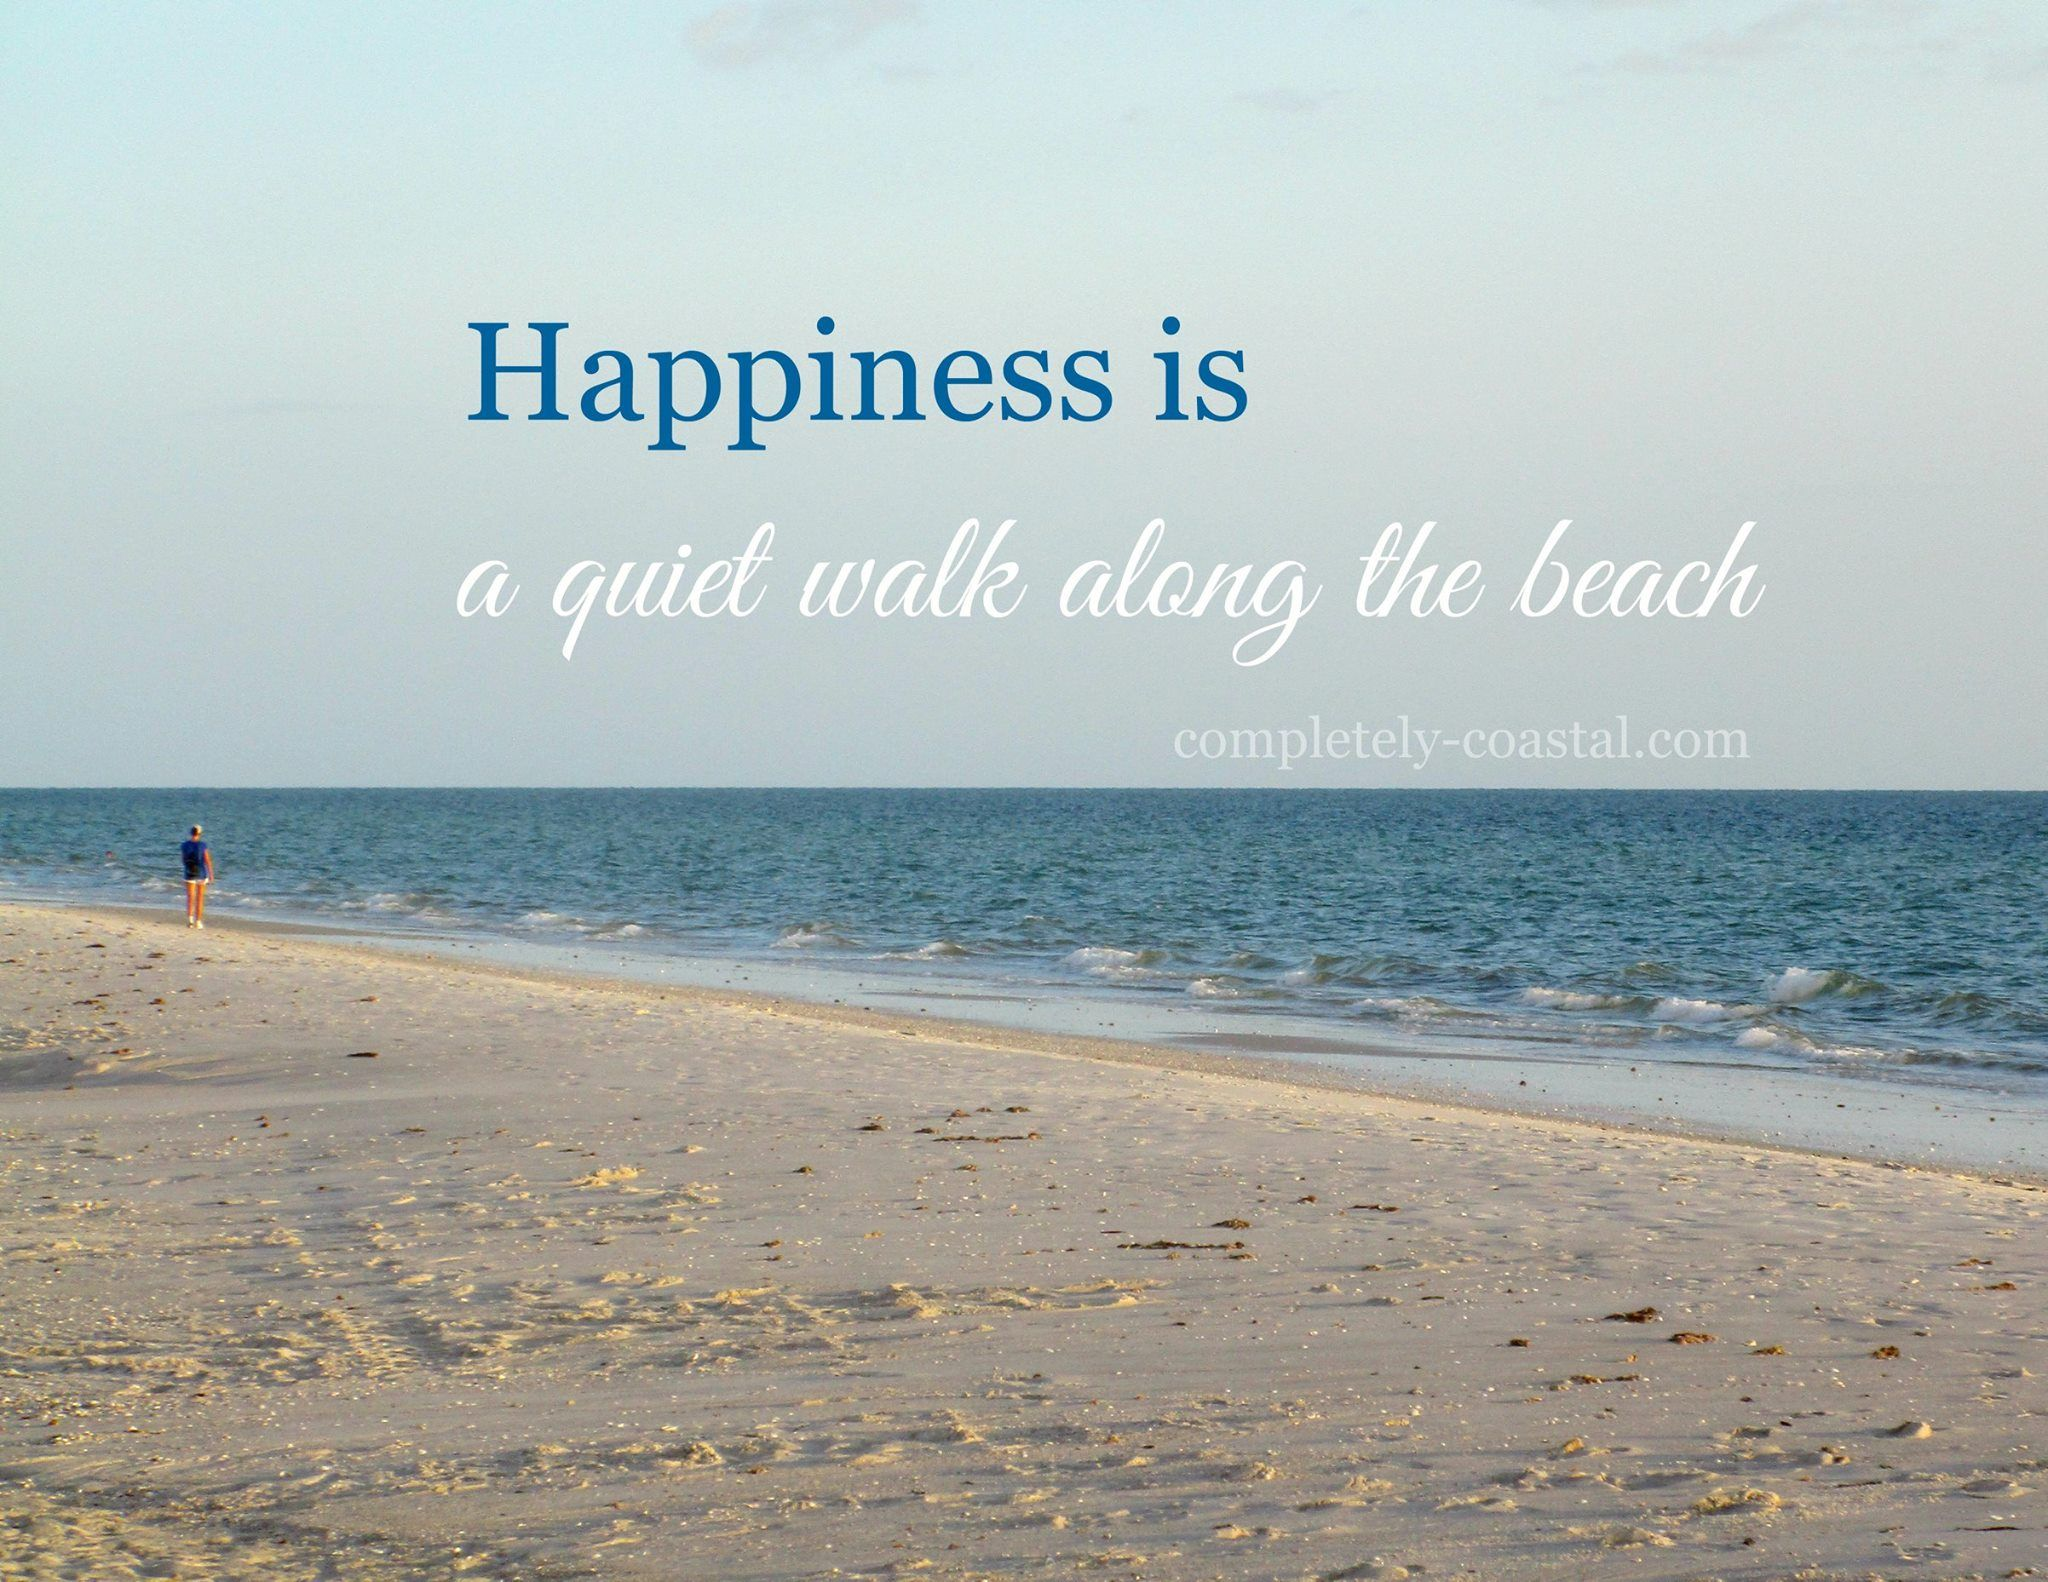 Beach Quotes: Pin By Completely Coastal On Beach Sayings & Ocean Quotes